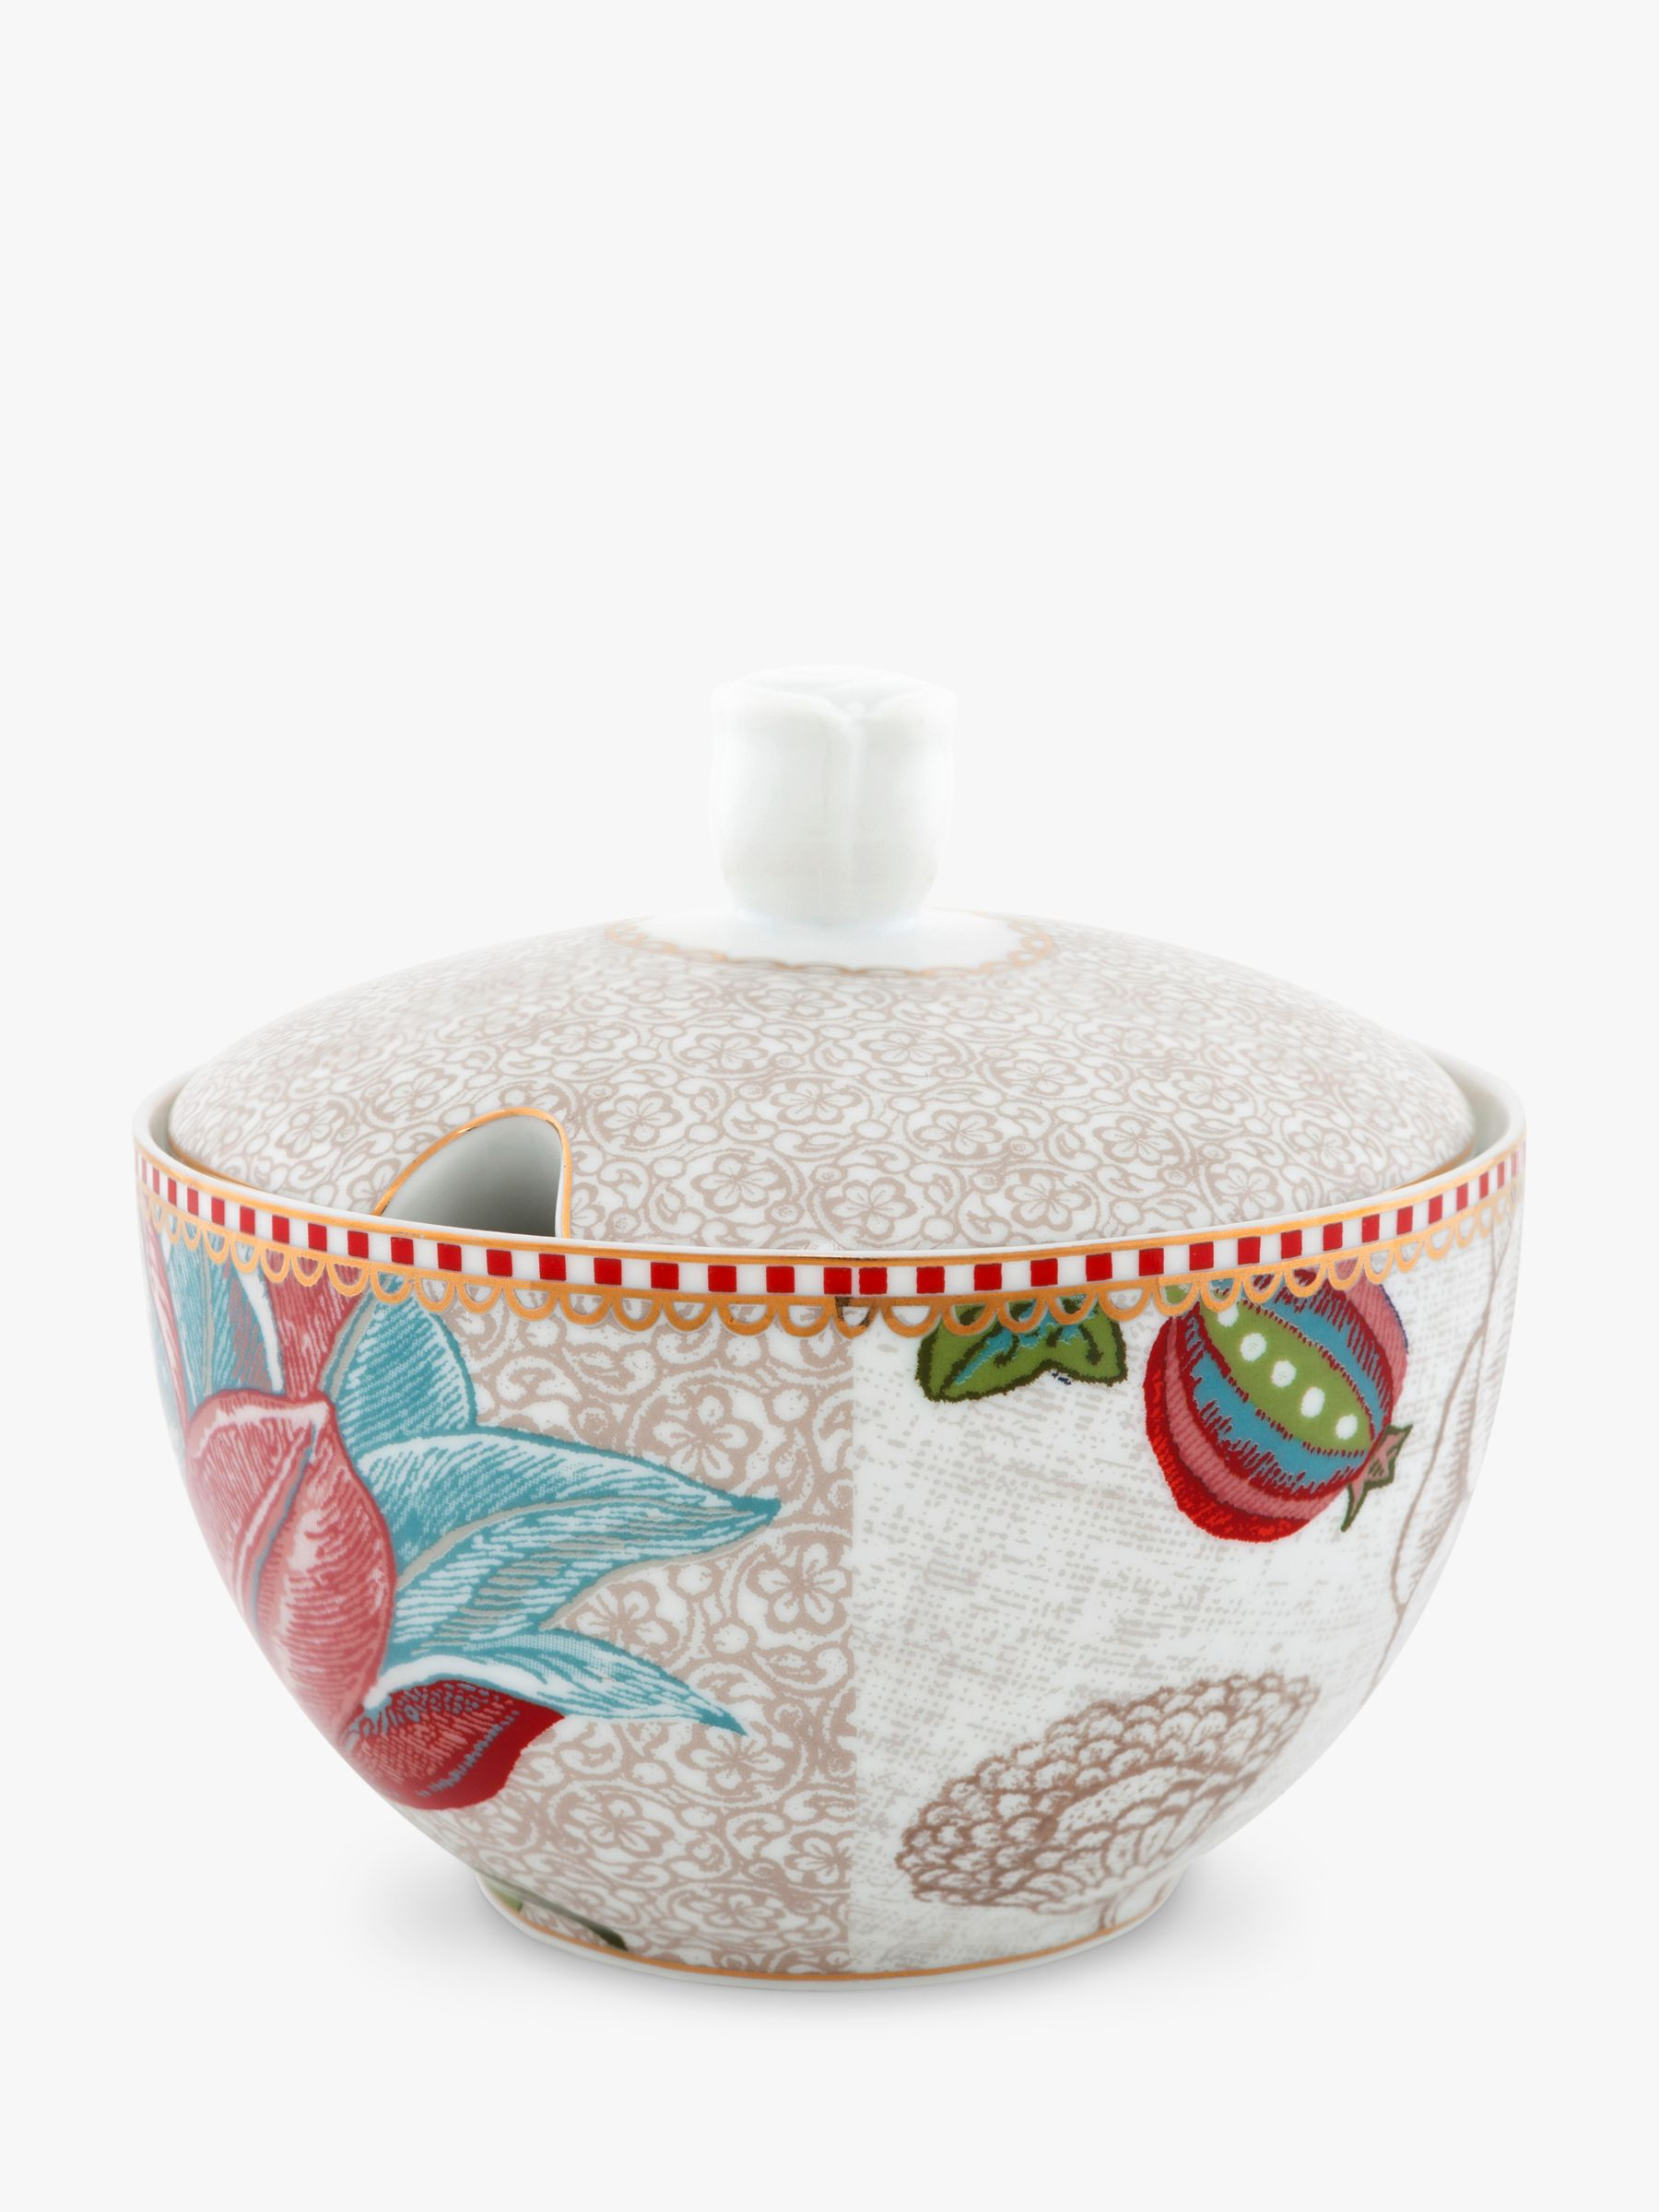 PiP Studio Pip Studio Spring to Life Sugar Bowl, Cream